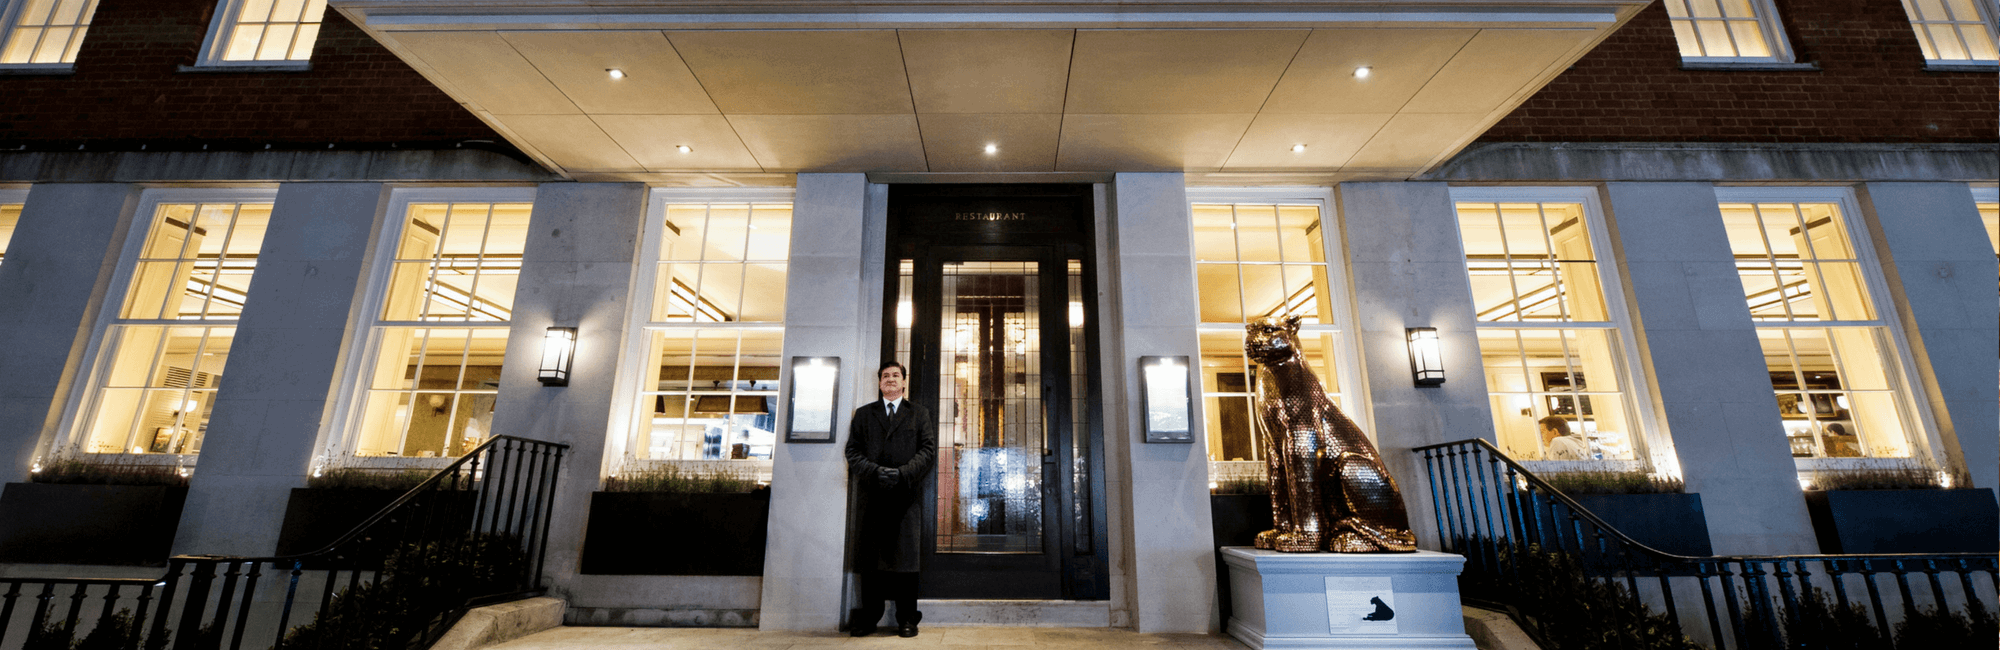 34 Mayfair in Central London